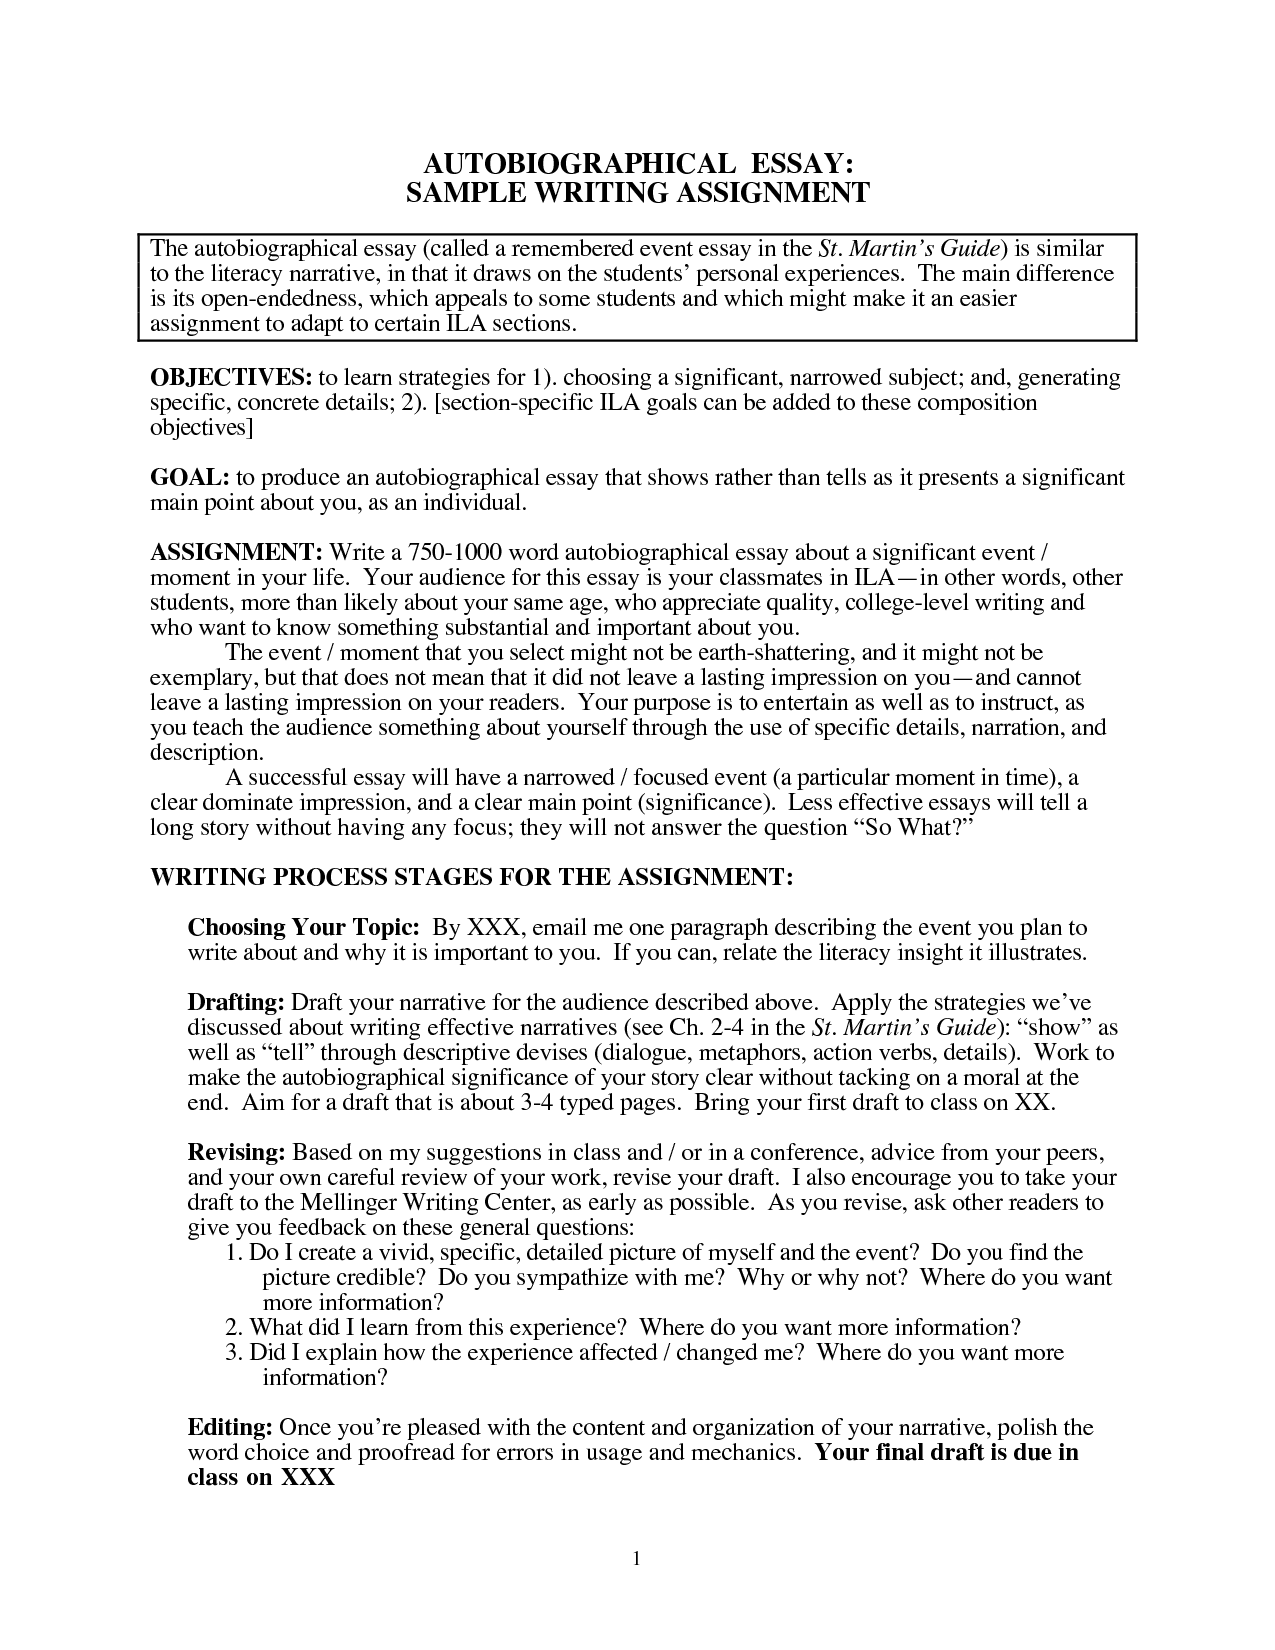 003 Sample Autobiographic Sketch College Autobiography Essay Example Knowing Imagine For Awesome How To Write Examples Singular Start An Annotated Bibliography A Good Scholarship Full